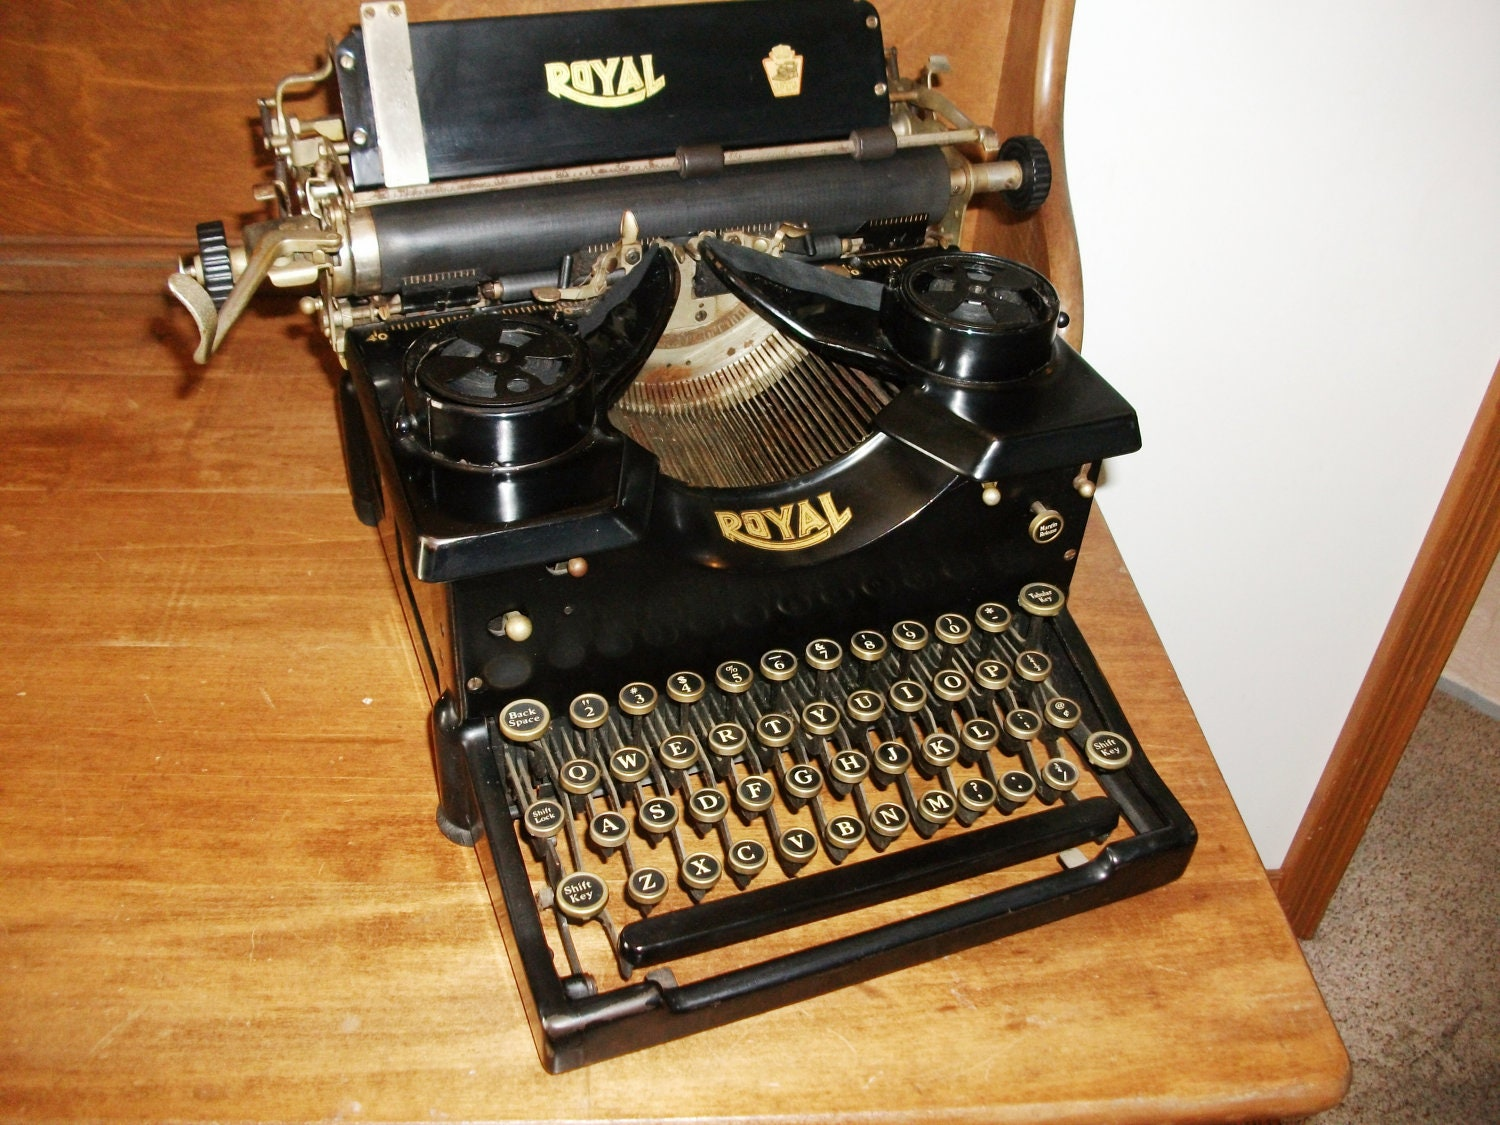 Royalty Free Typewriter Pictures, Images and Stock Photos - iStock Pictures of antique typewriters